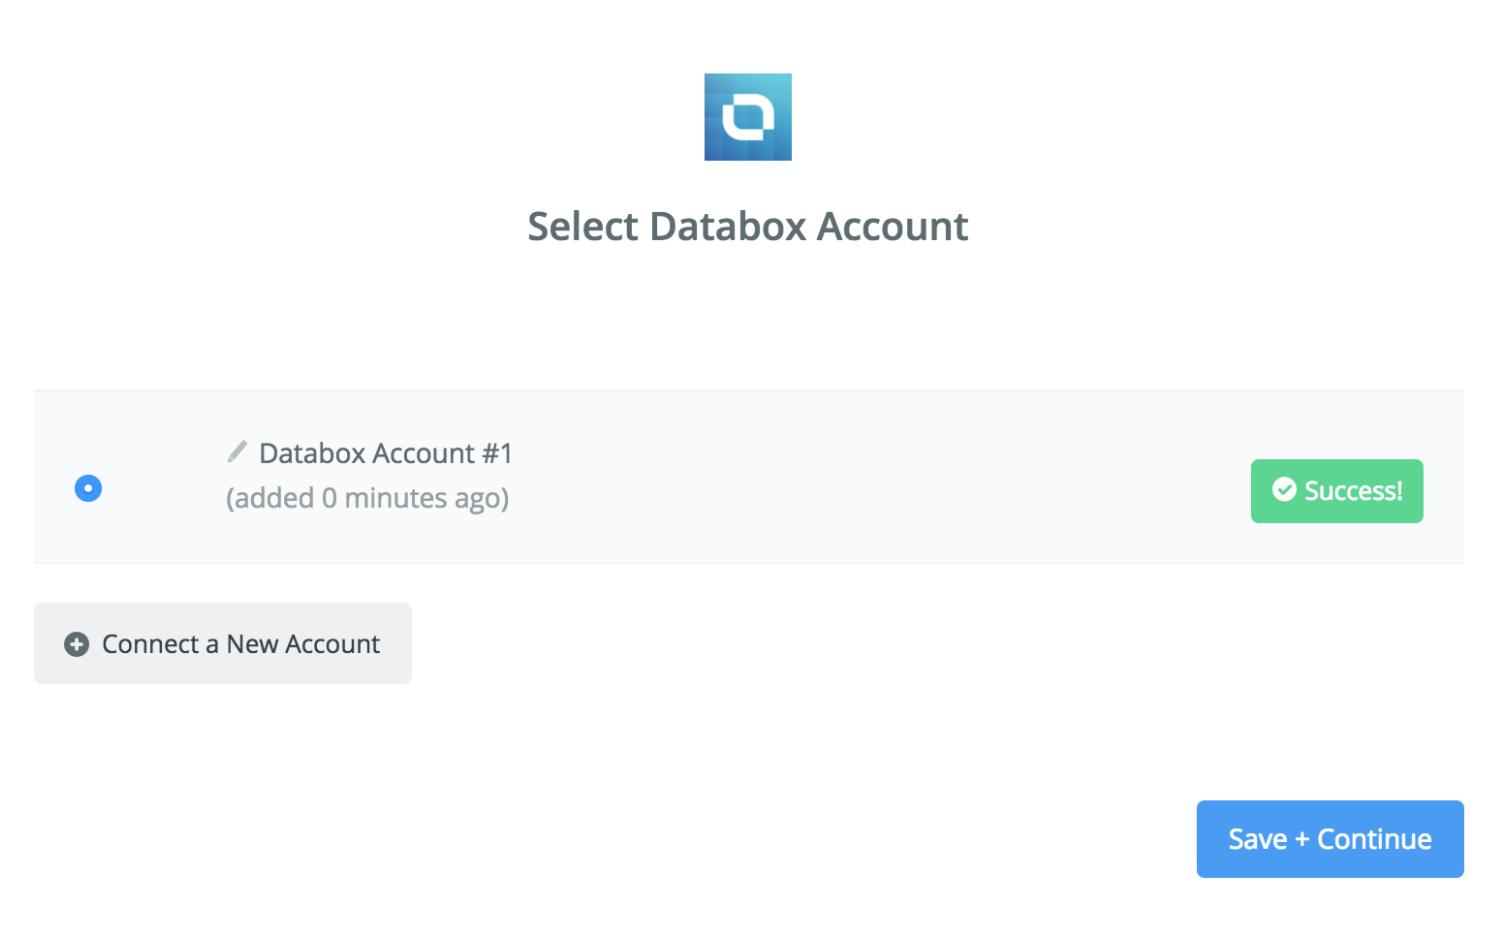 Databox connection successfull